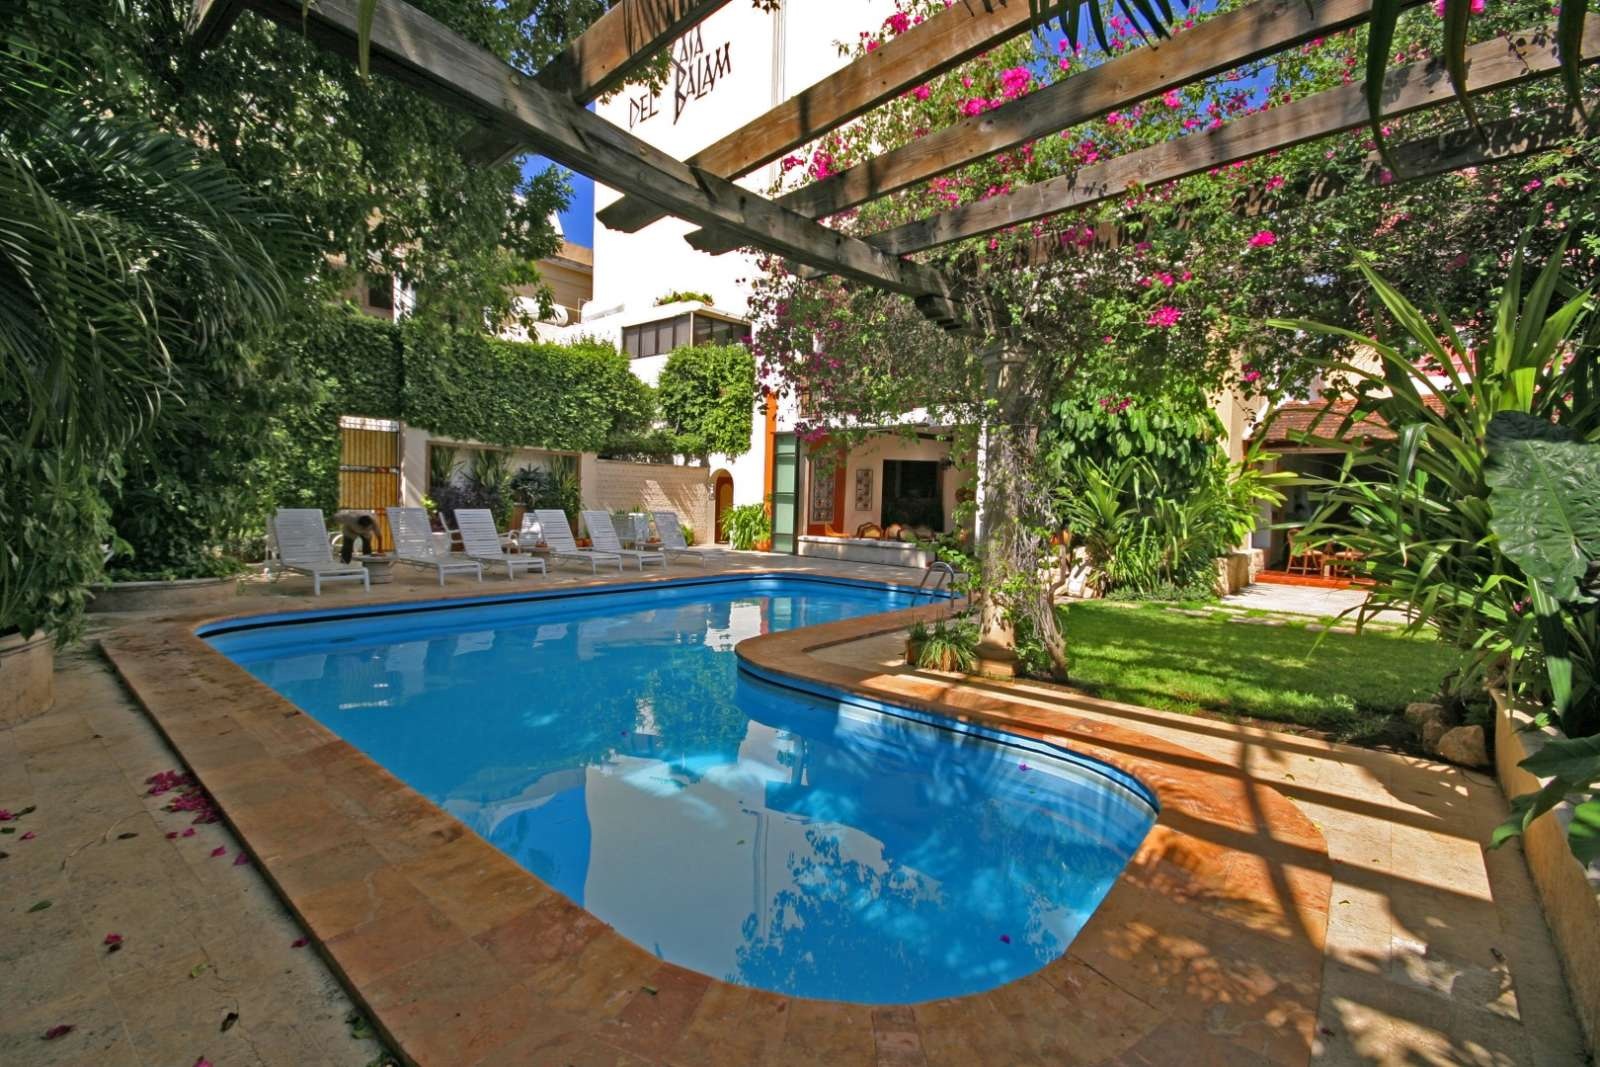 Swimming Pool hotel at Casa Del Balam in Merida